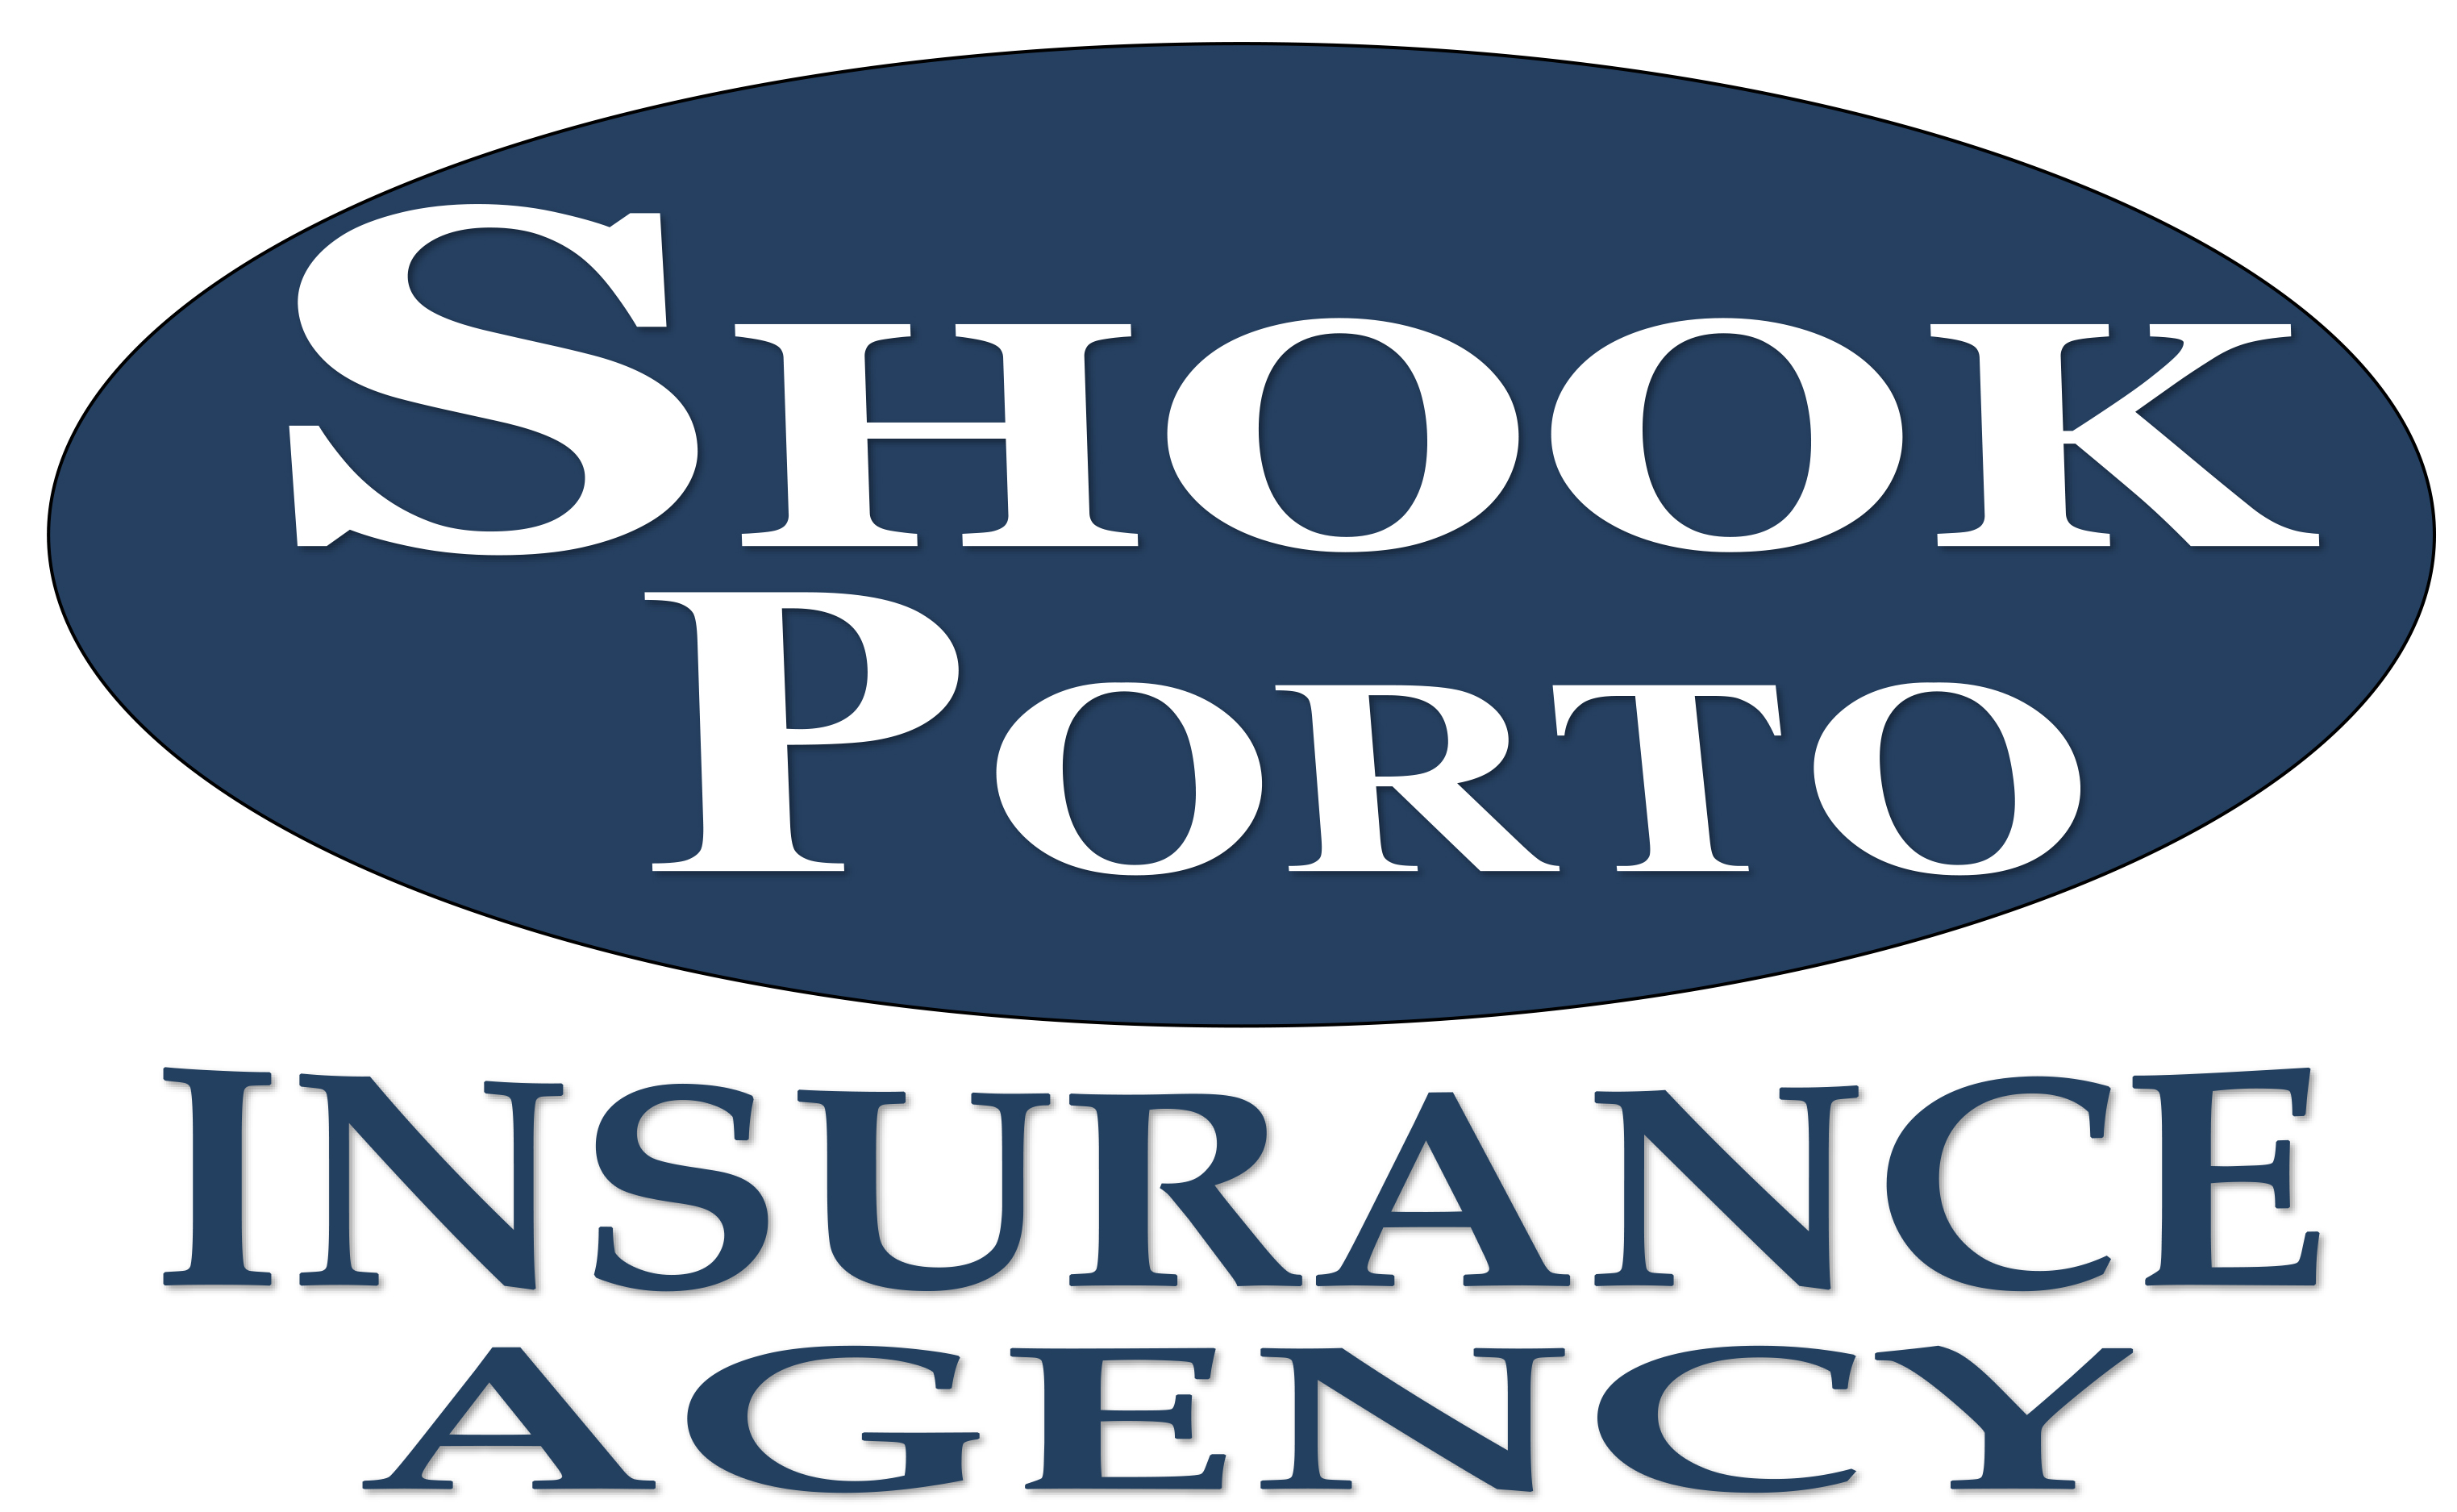 shook-porto-logo